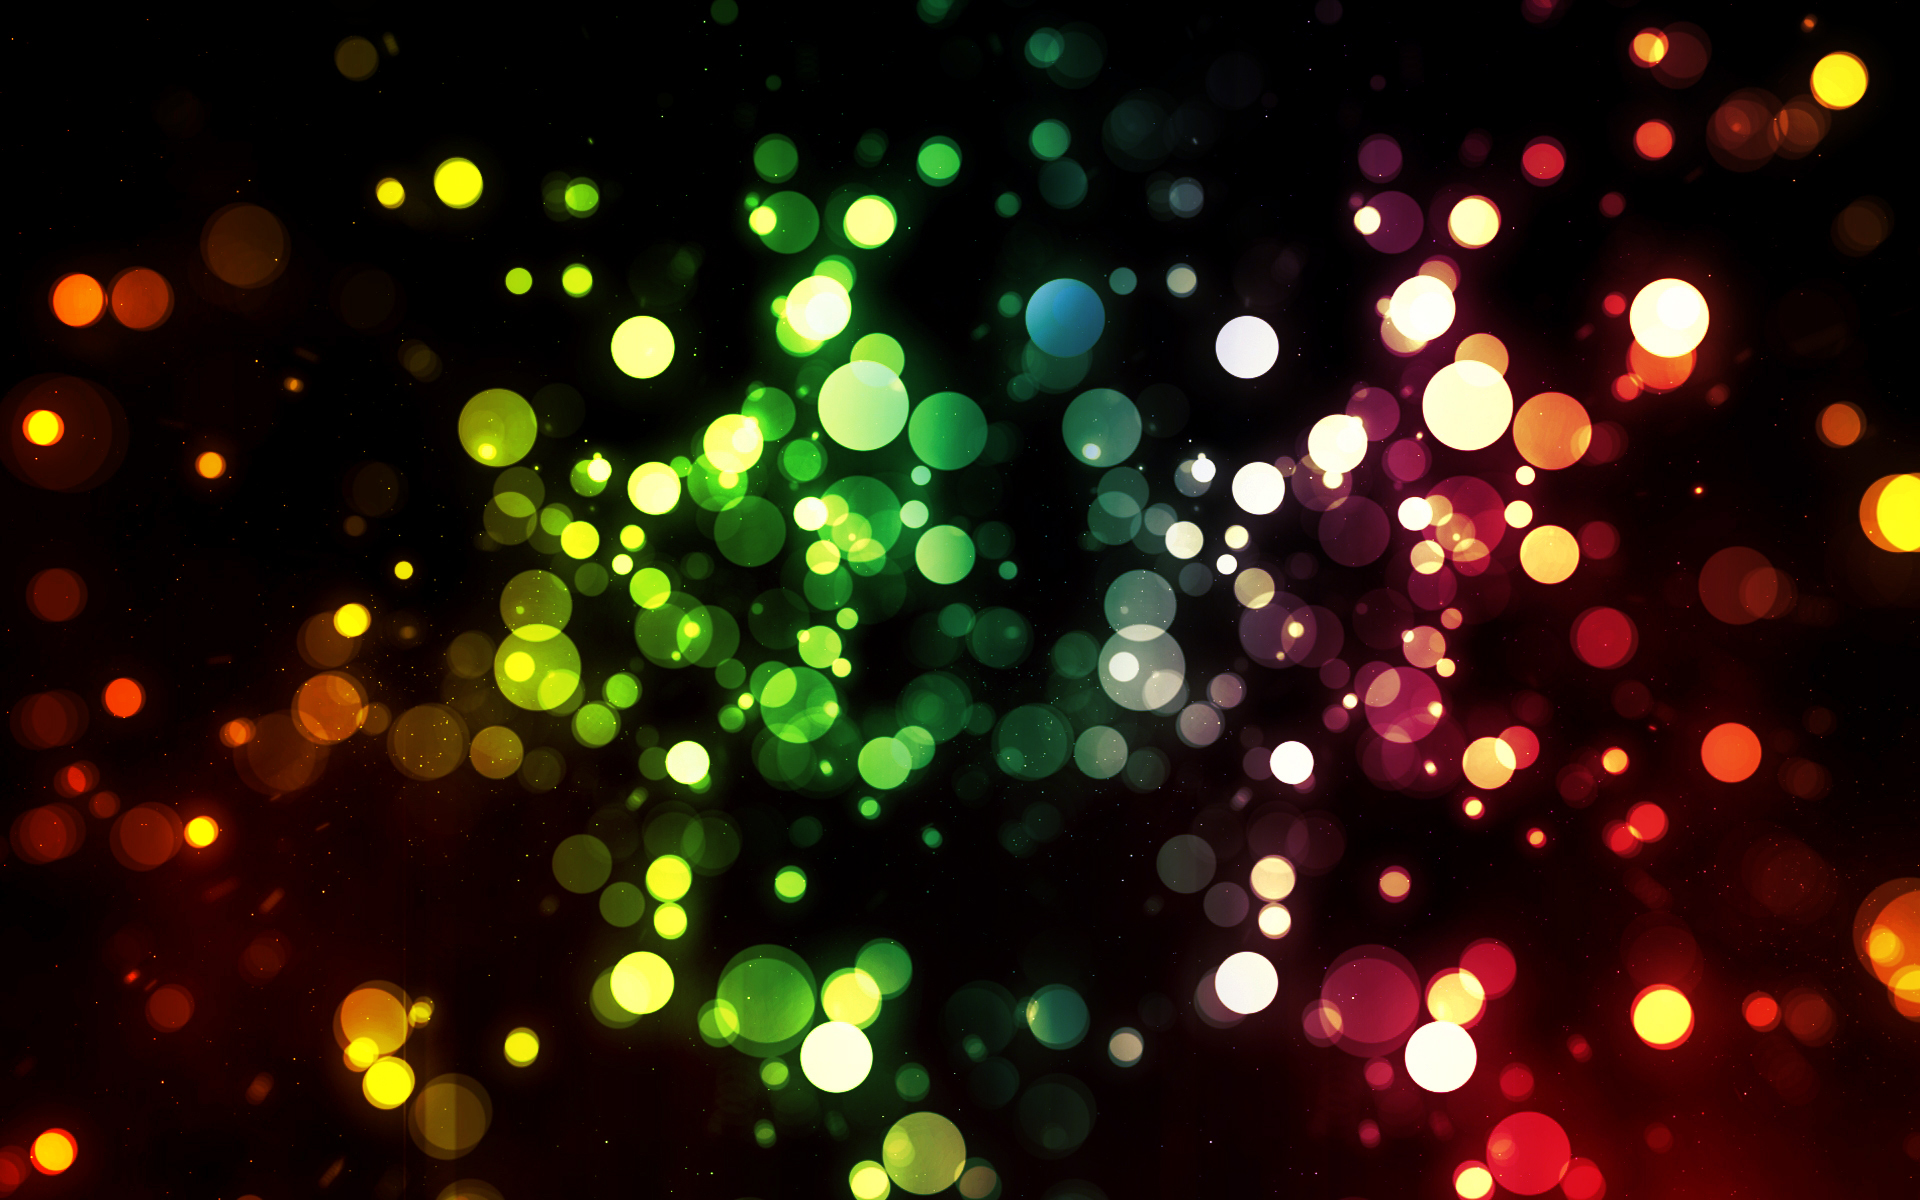 Related Wallpapers: Sparkles